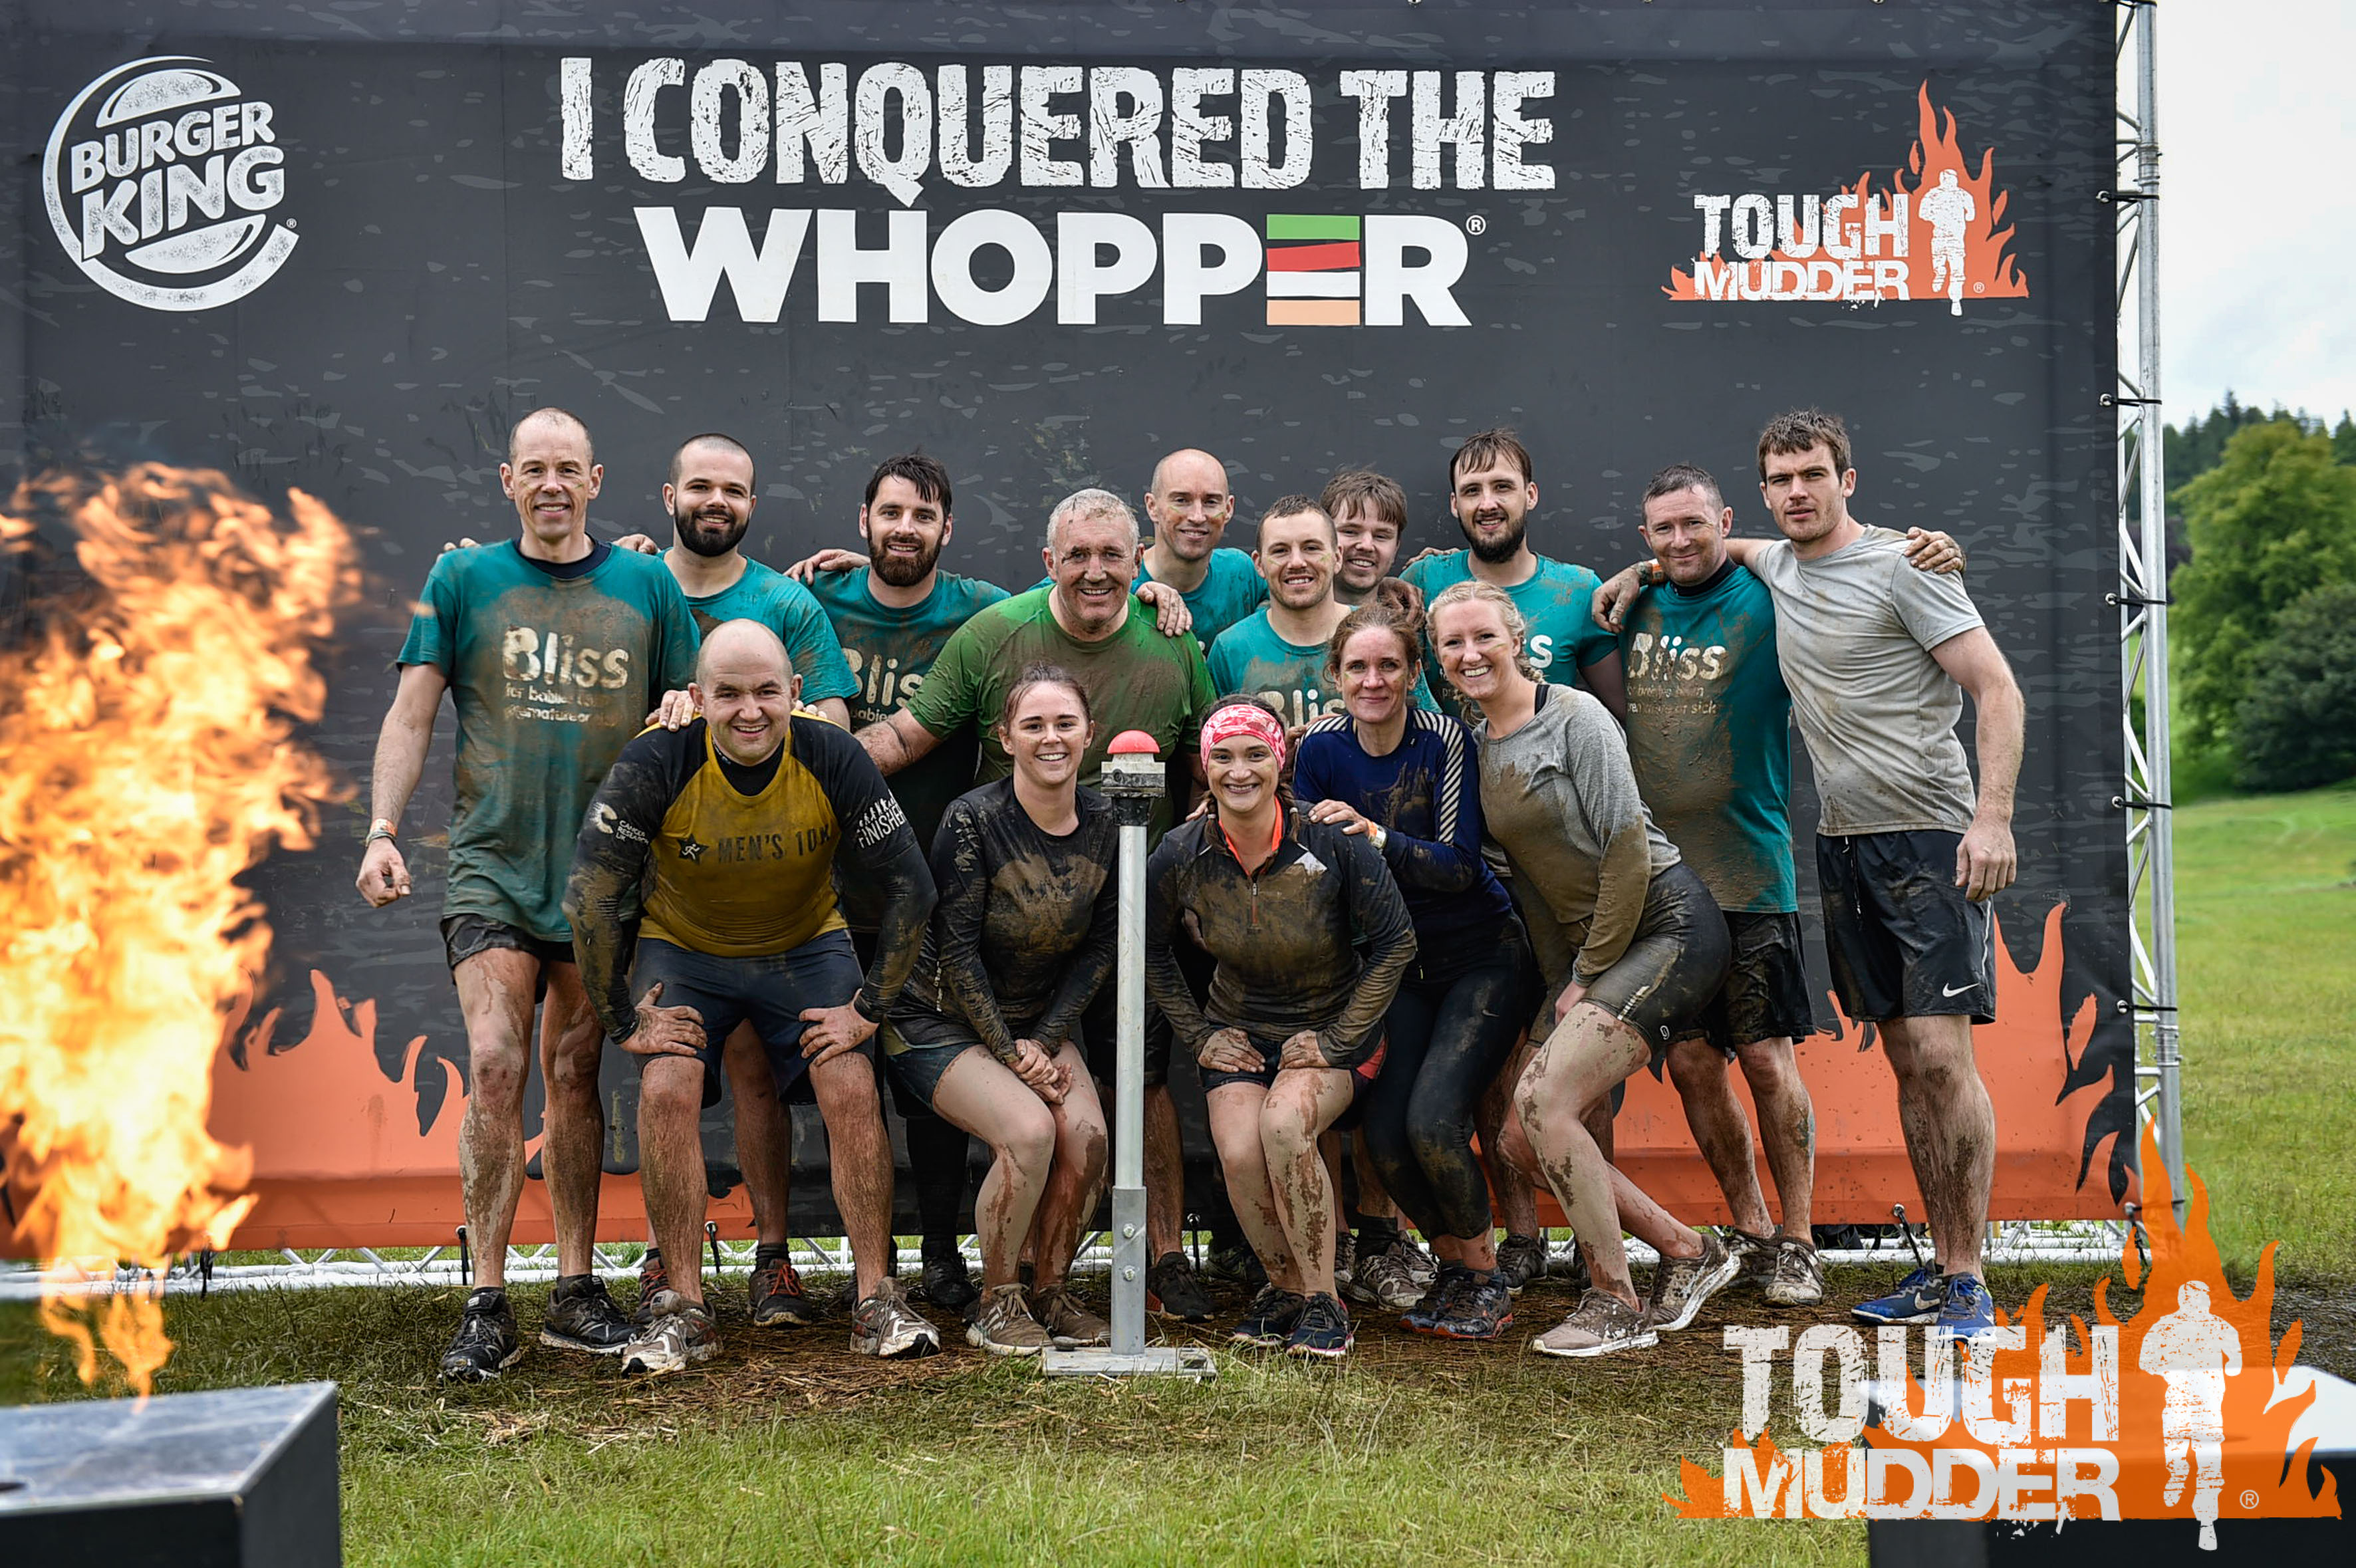 Cruden team at Tough Mudder event